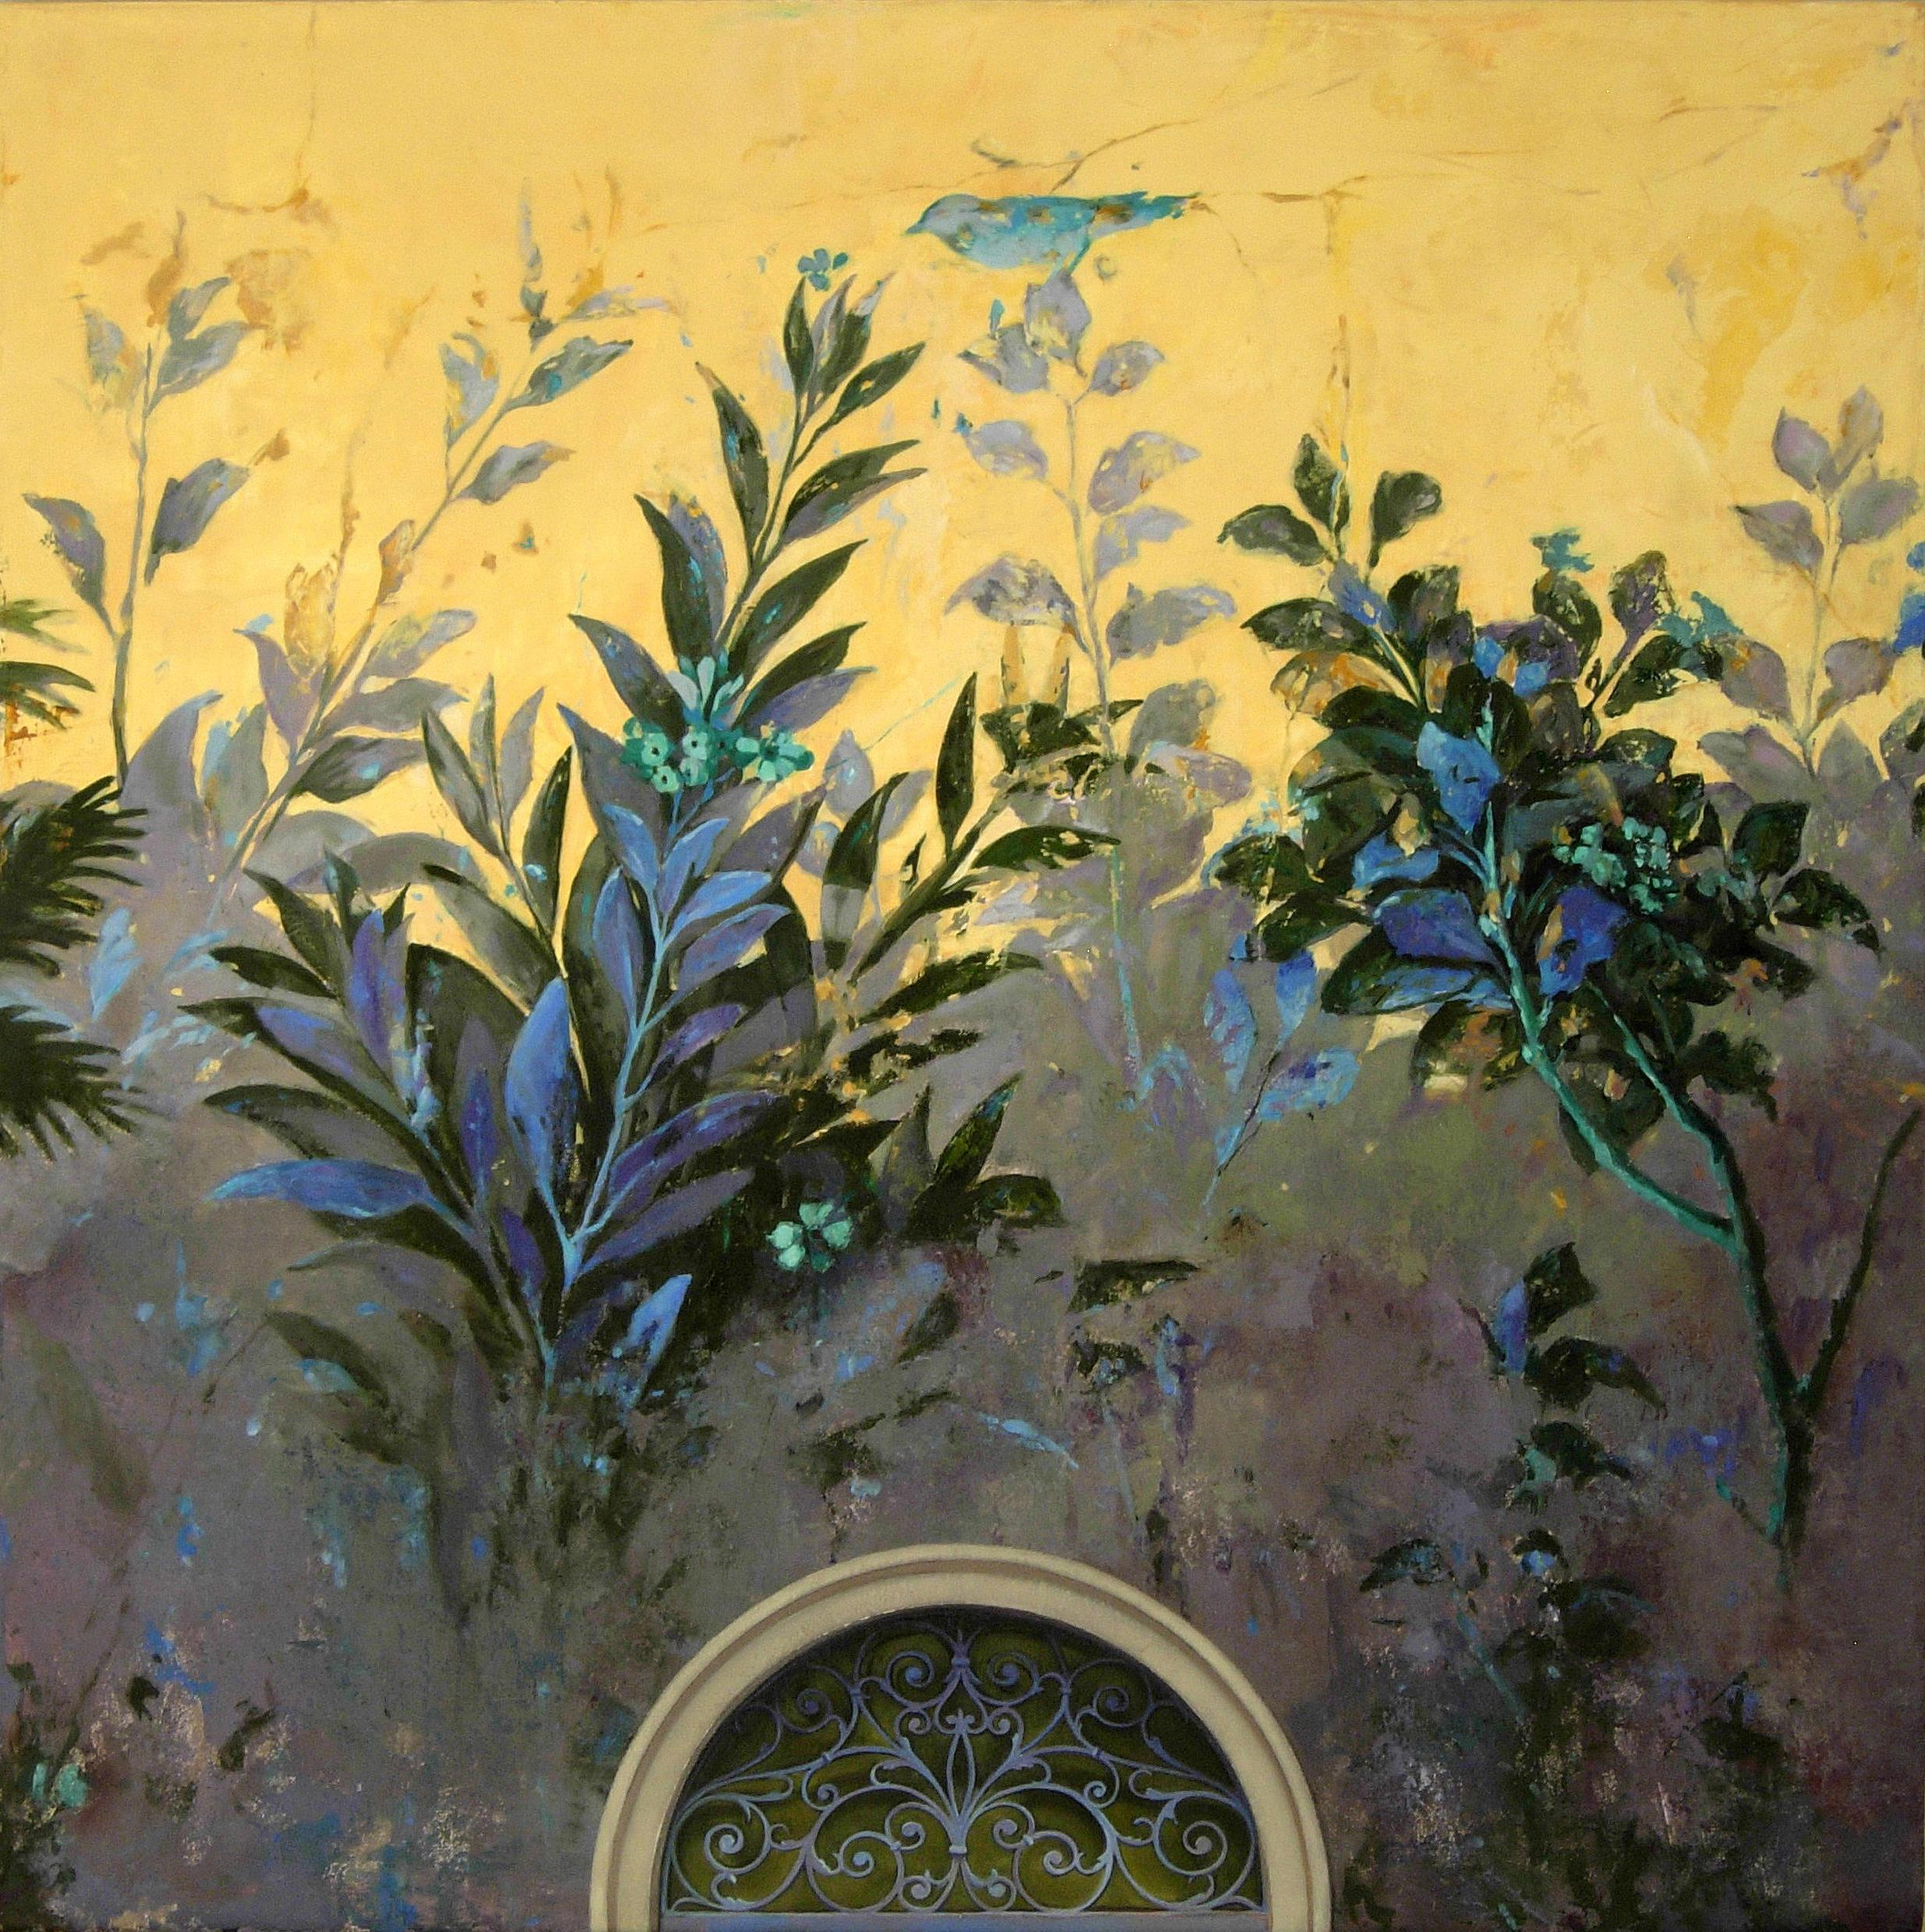 Sostenere, Gardenscape Inspired by Ancient Roman Frescos, Original Oil Painting